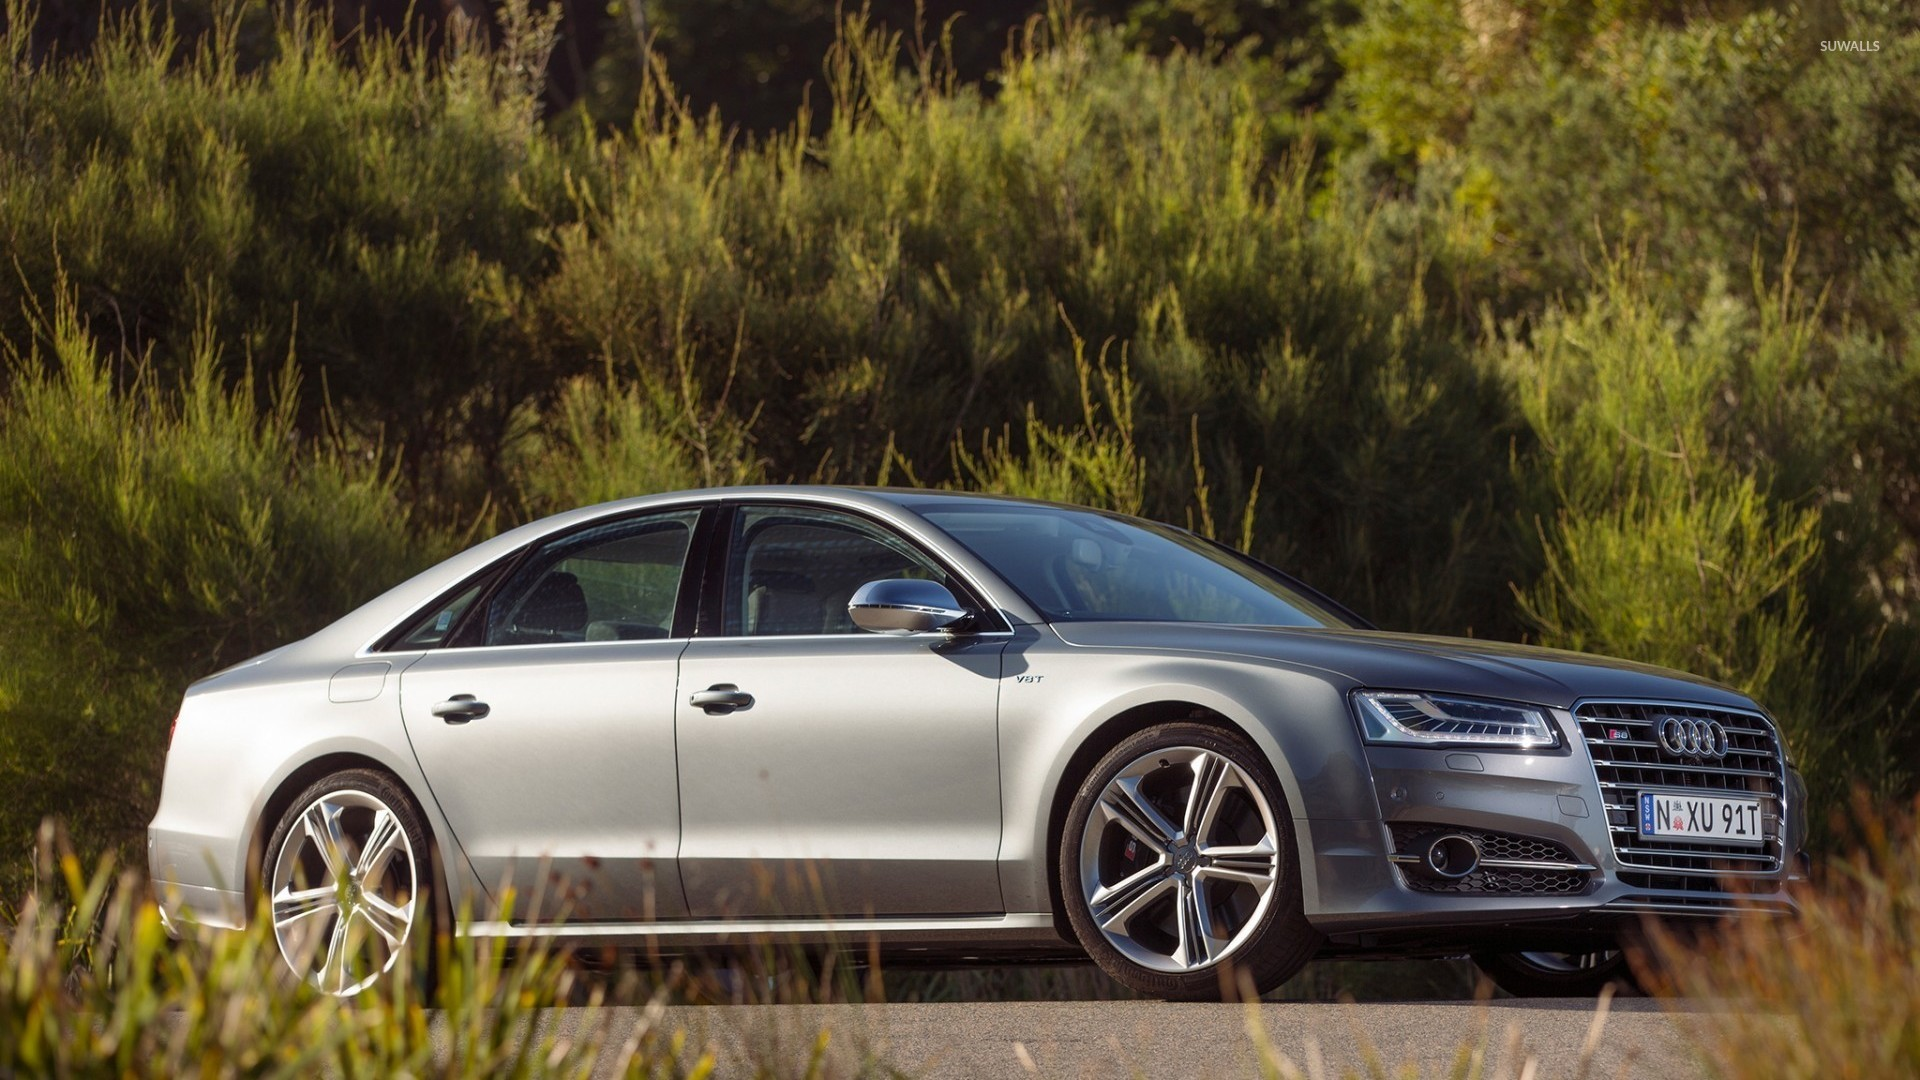 2014 Audi S8 Near The Forest Wallpaper Car Wallpapers